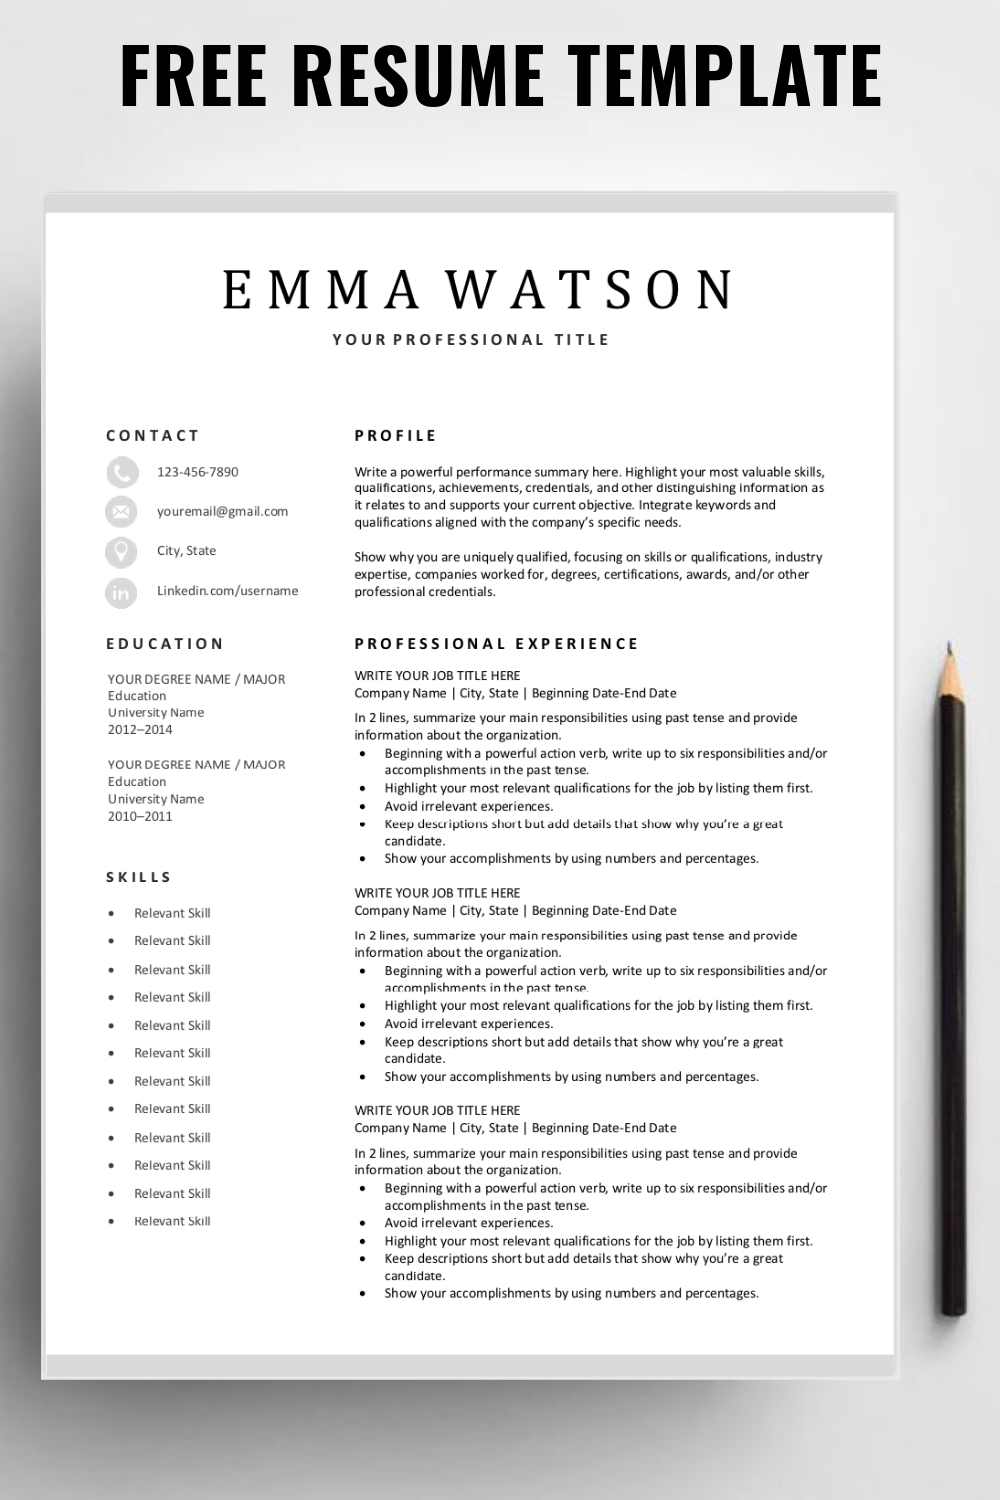 Looking For A Free Editable Resume Template Sign Up For Our Job Search Tips And Downloa Free Printable Resume Templates Resume Template Free Printable Resume